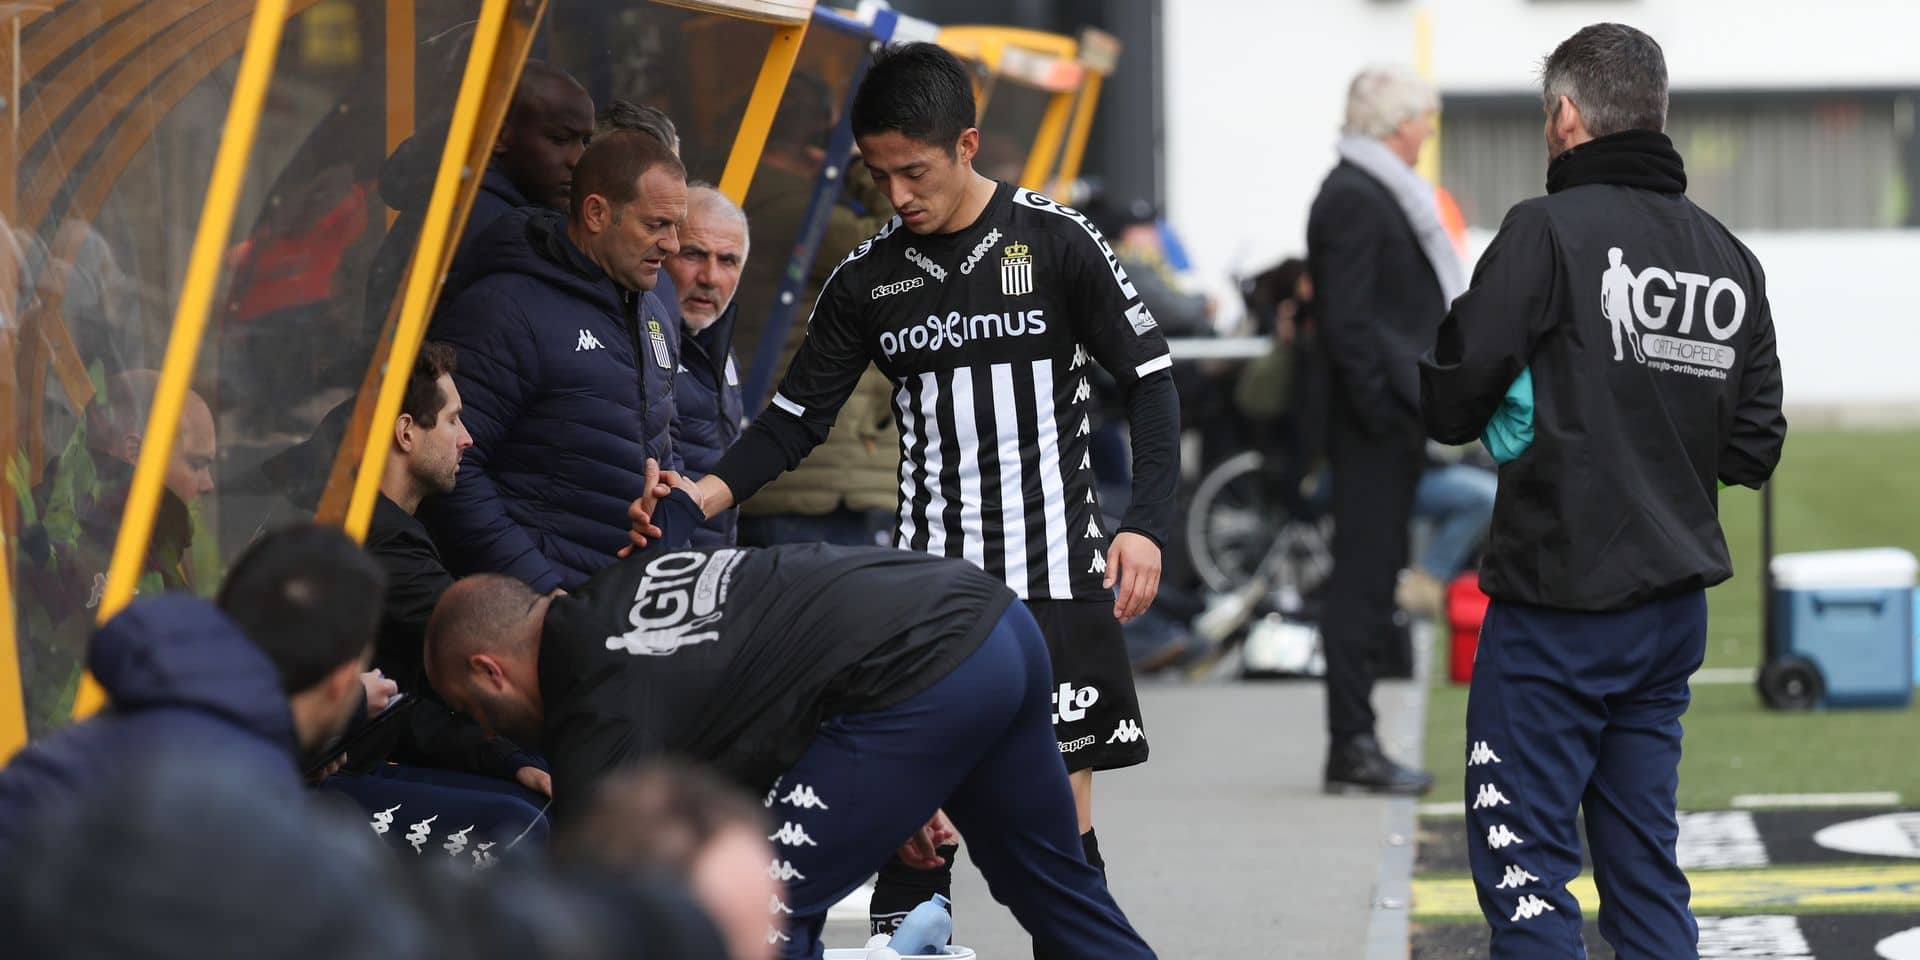 Charleroi's Ryota Morioka leaves the pitch after being injured during a soccer match between STVV and Charleroi, Sunday 31 March 2019 in Sint-Truiden, on day 1 (out of 10) in group A of the Play-off 2 of the 'Jupiler Pro League' Belgian soccer championship. BELGA PHOTO VIRGINIE LEFOUR